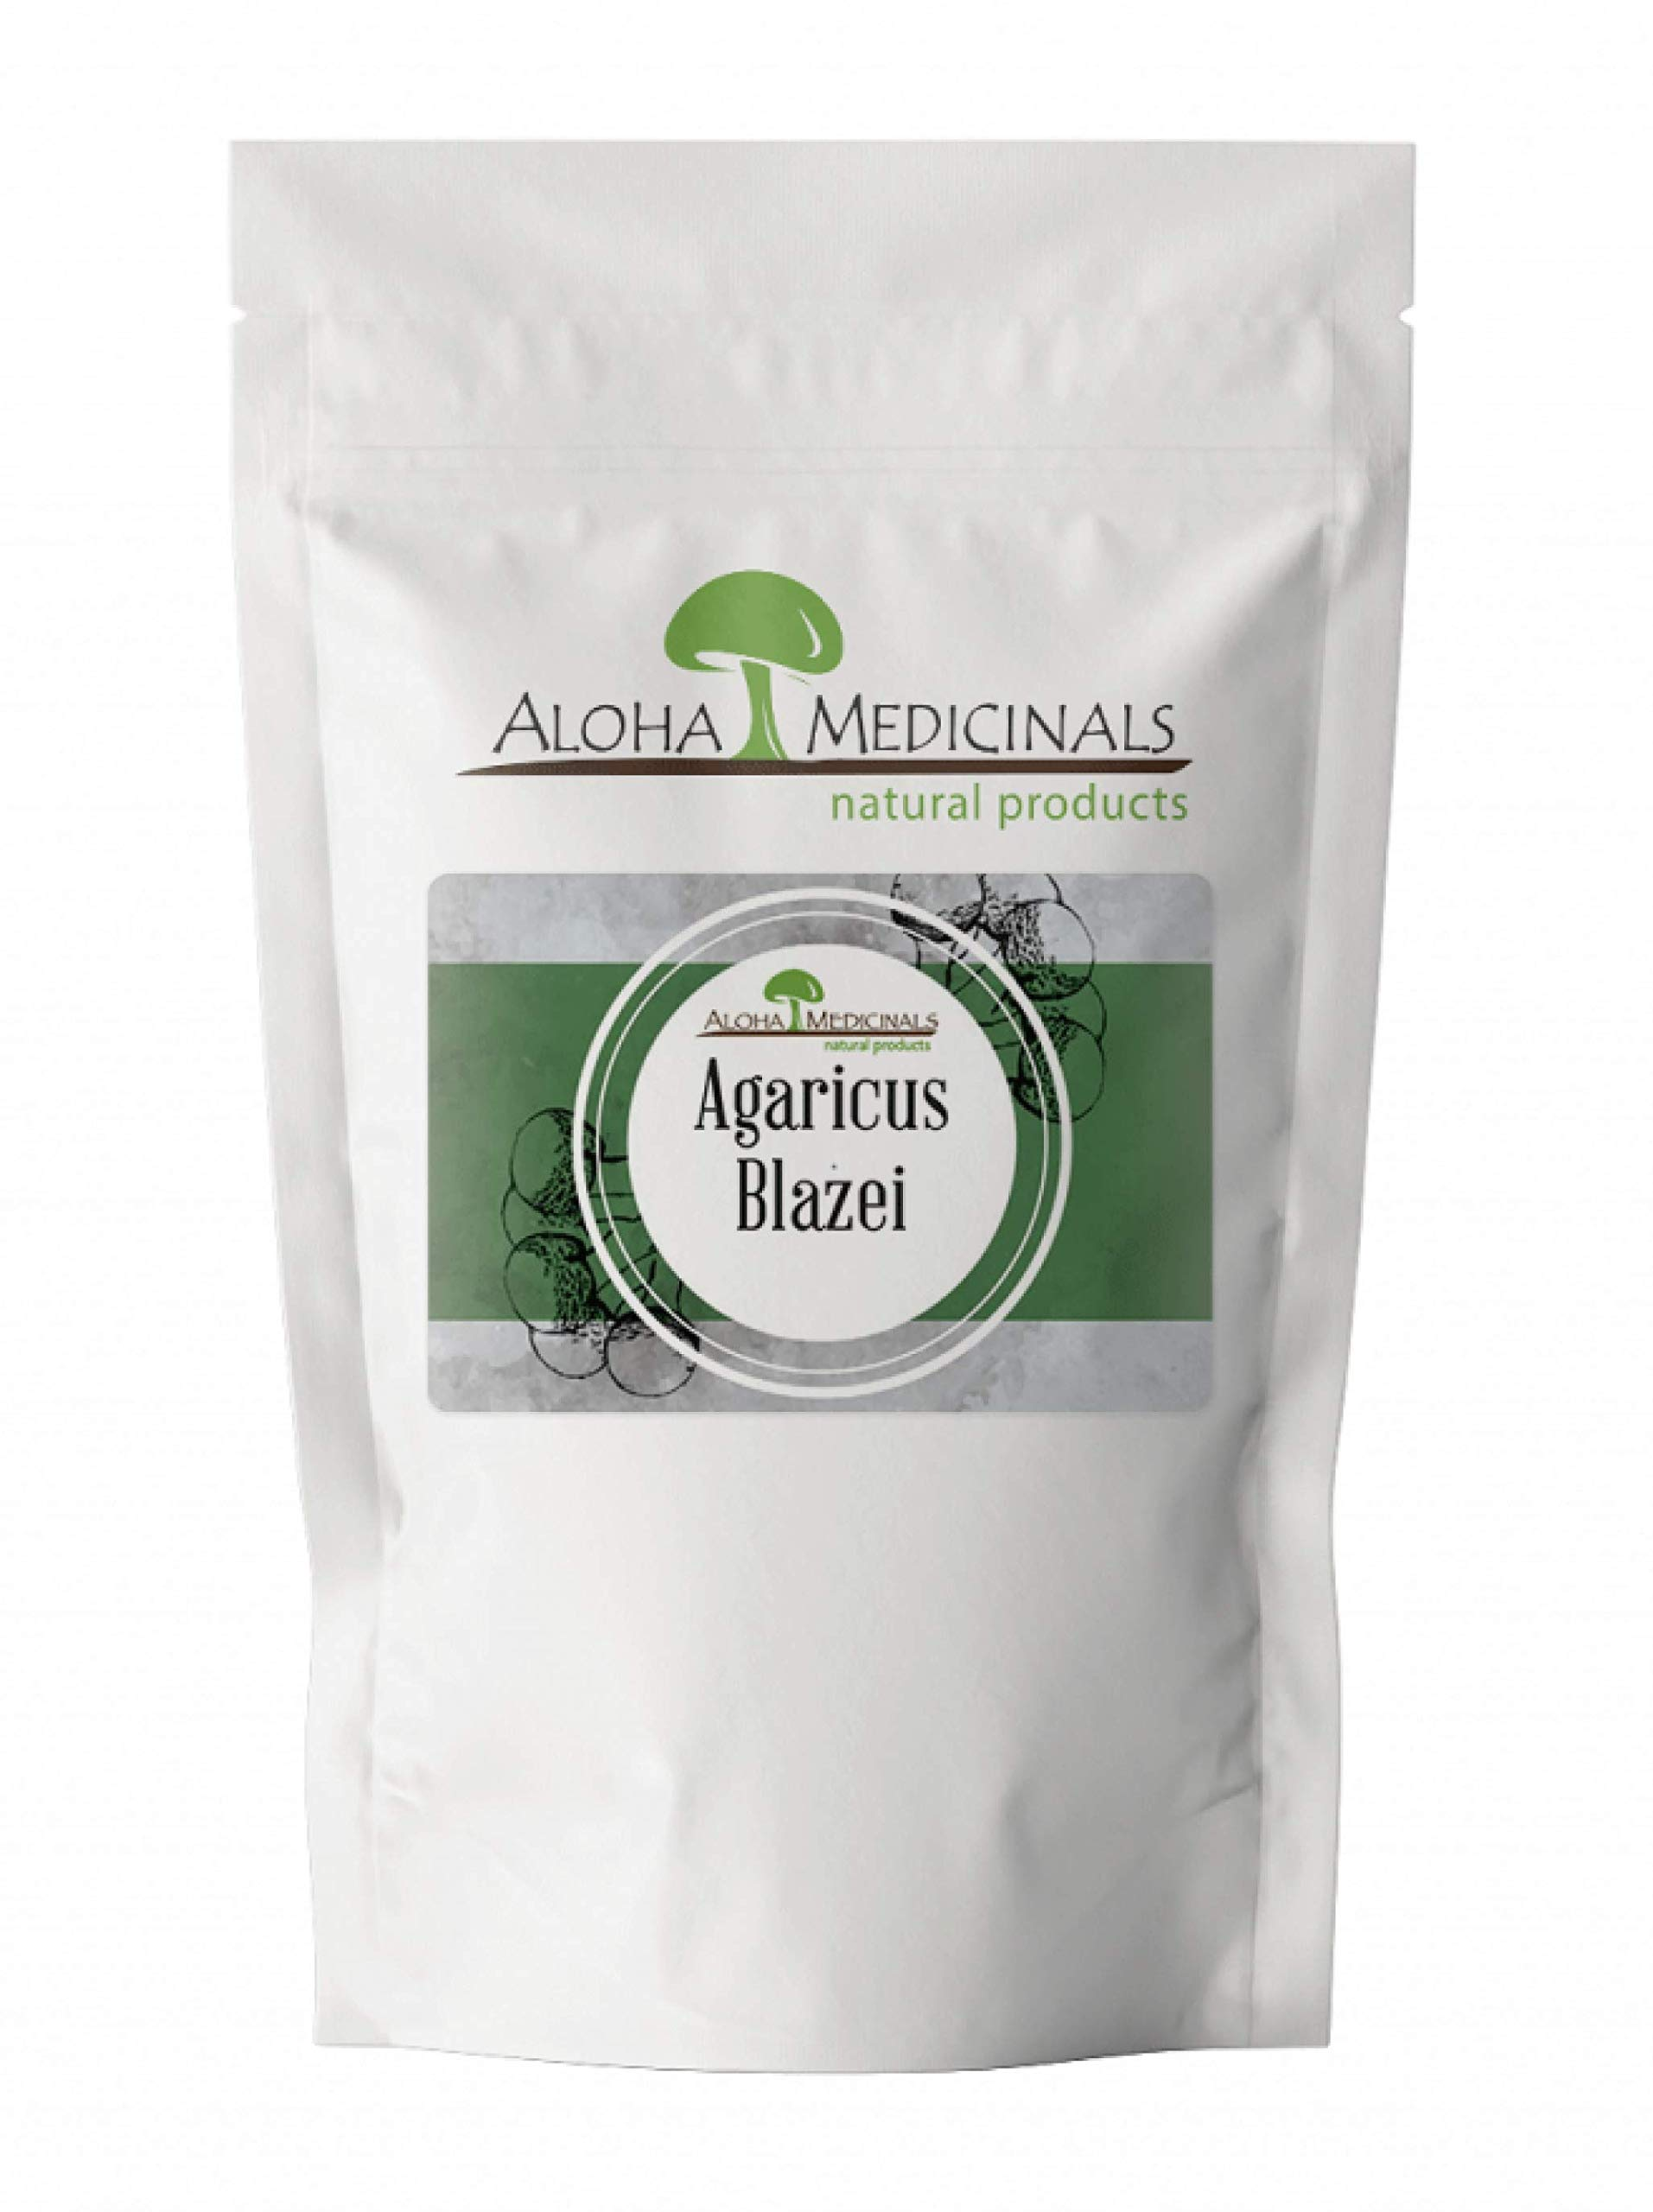 Aloha Medicinals - Pure Agaricus Blazei – Certified Organic Mushroom - Natural Health Supplement – Supports Cardiovascular, Liver, Gut, Joint, Energy Function – Insulin Control - 1 Kilo Bag (Powder)